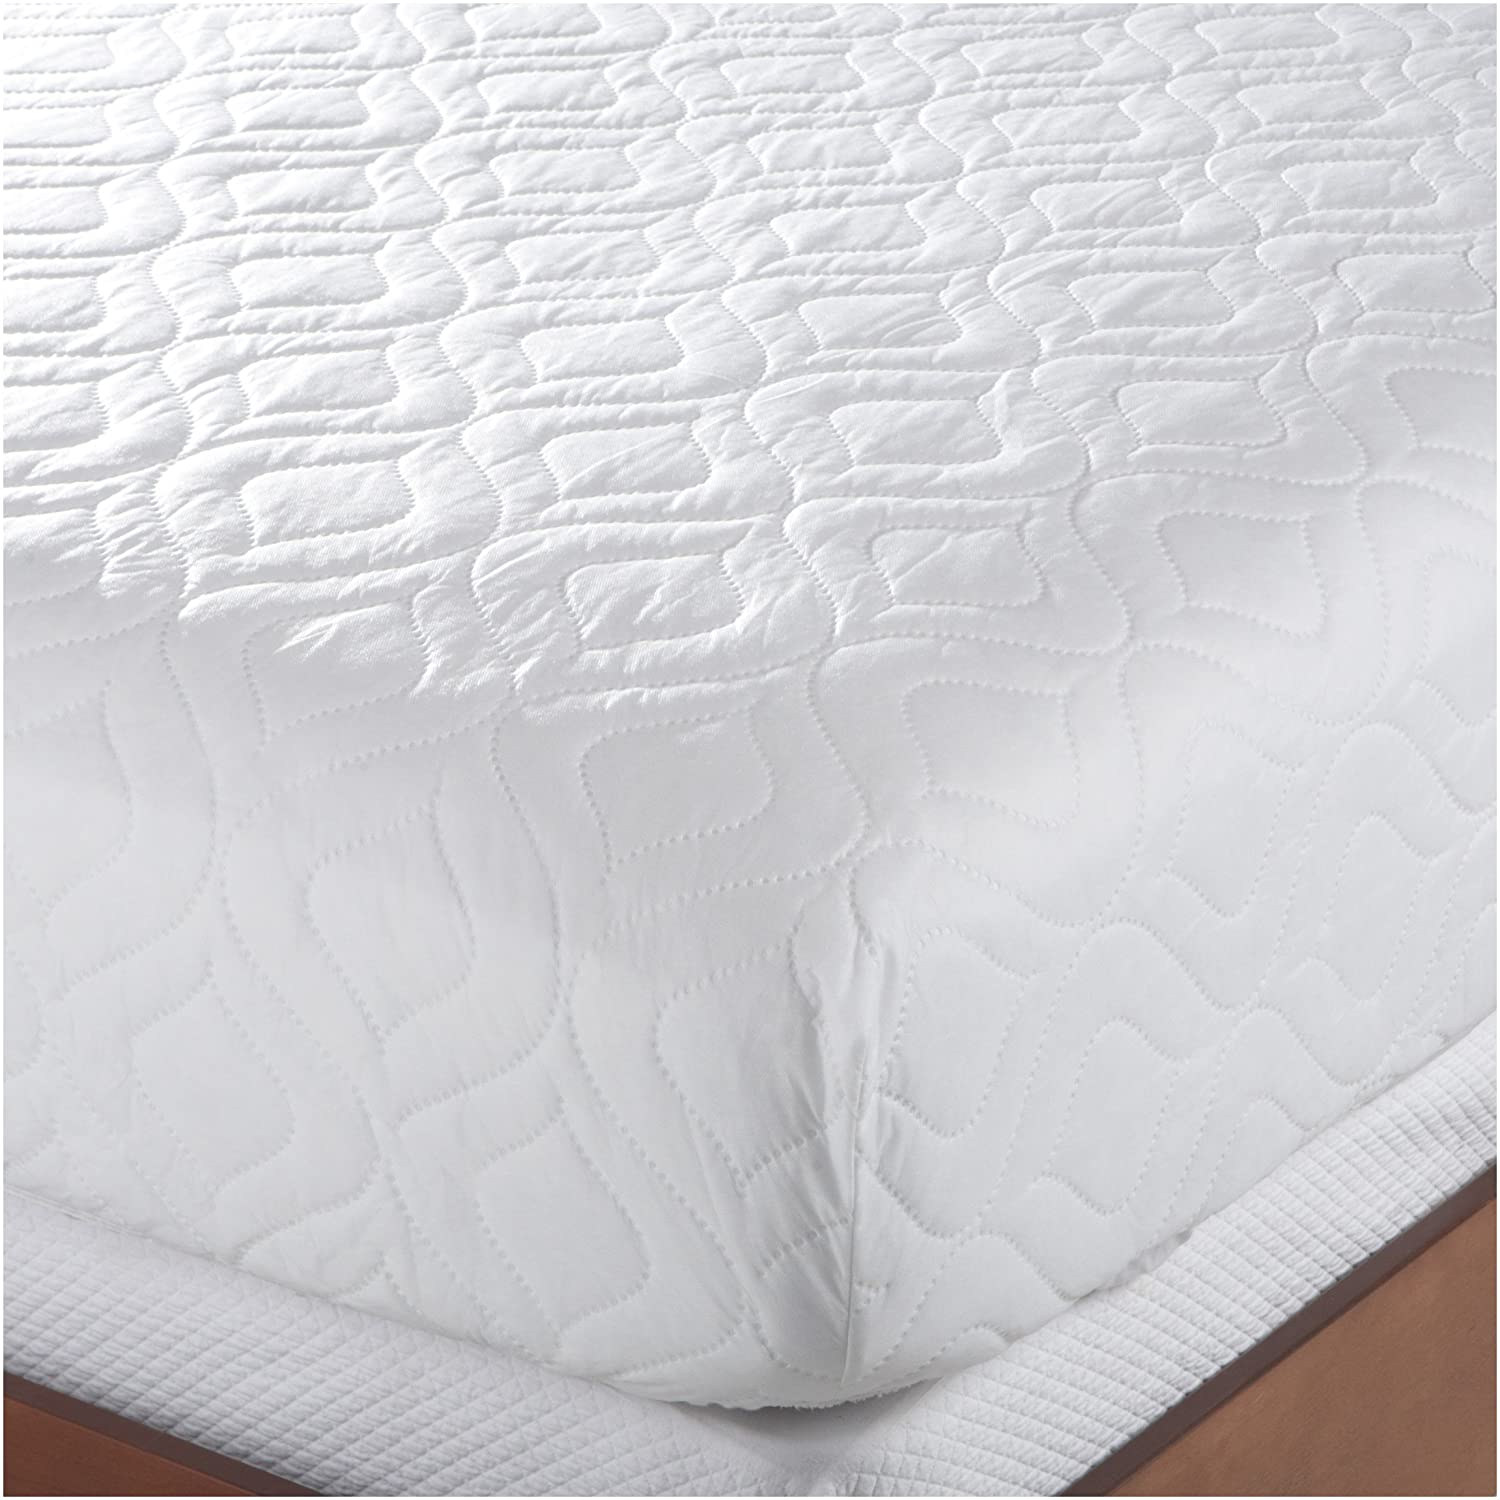 pillow mattress beautyrest pad trusty cotton pads top best choosing cover queen decor